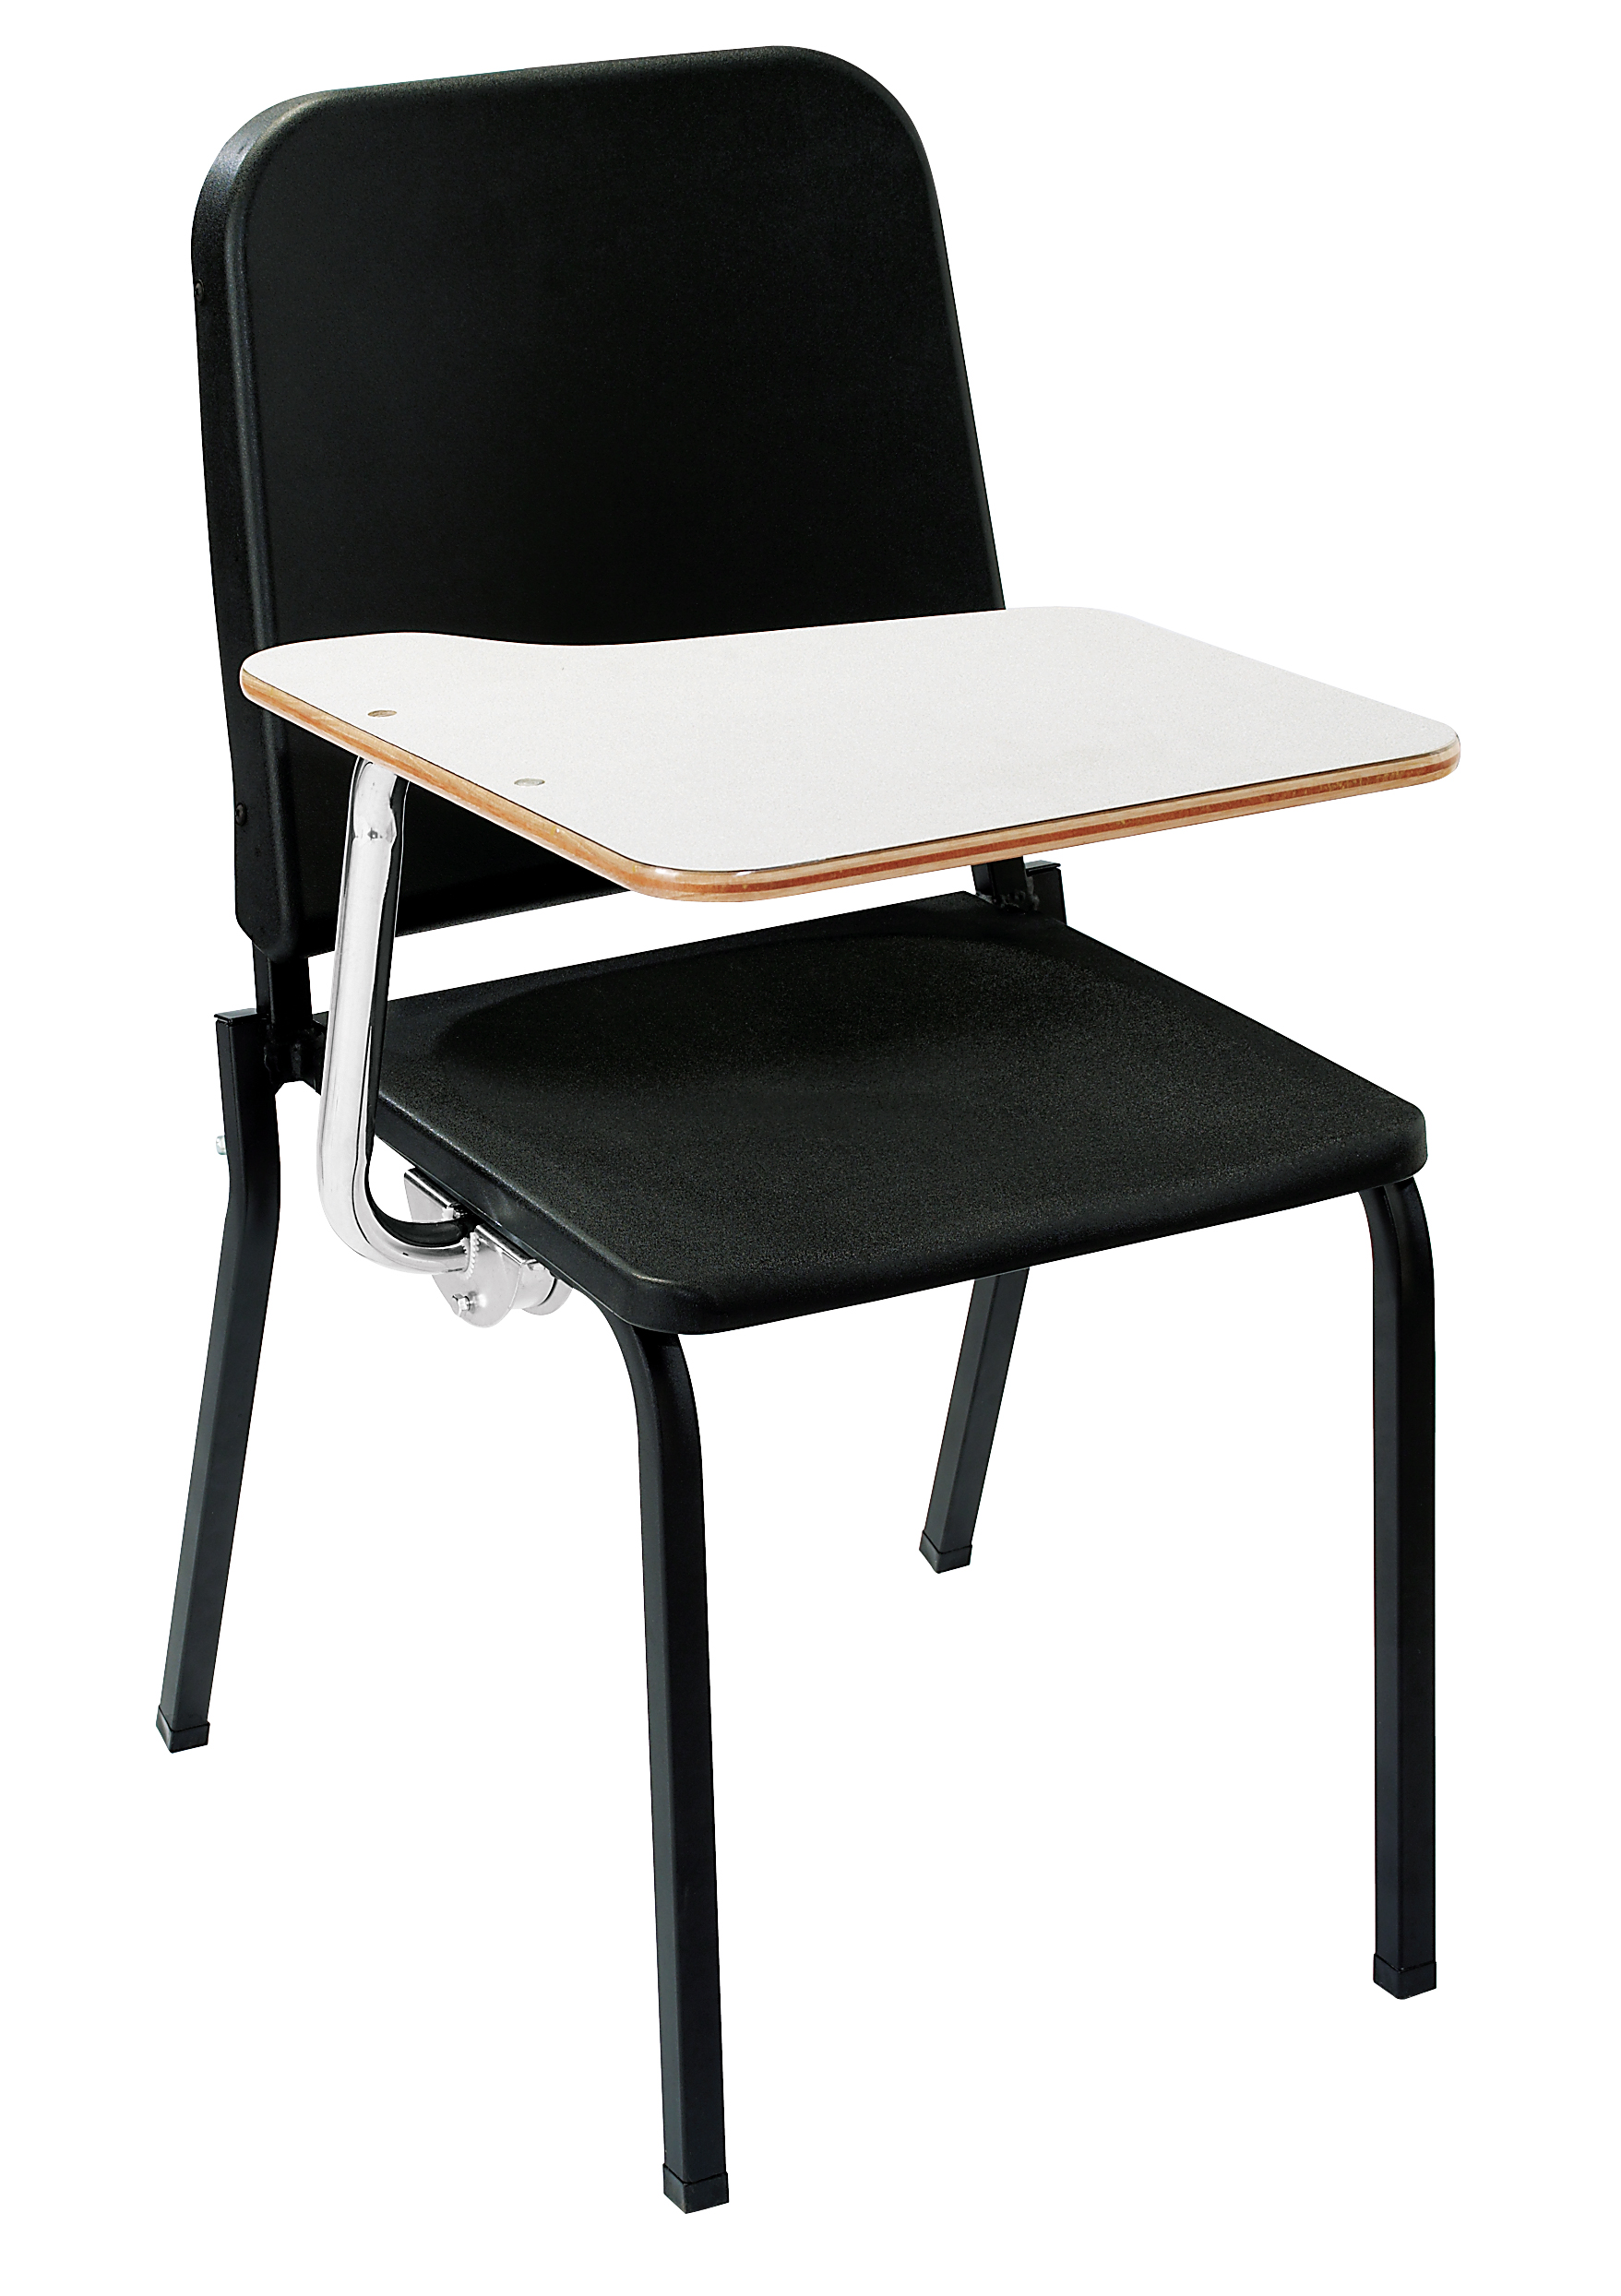 8200 Series Band & Orchestra Melody Chair with Flip Behind Tablet Arm